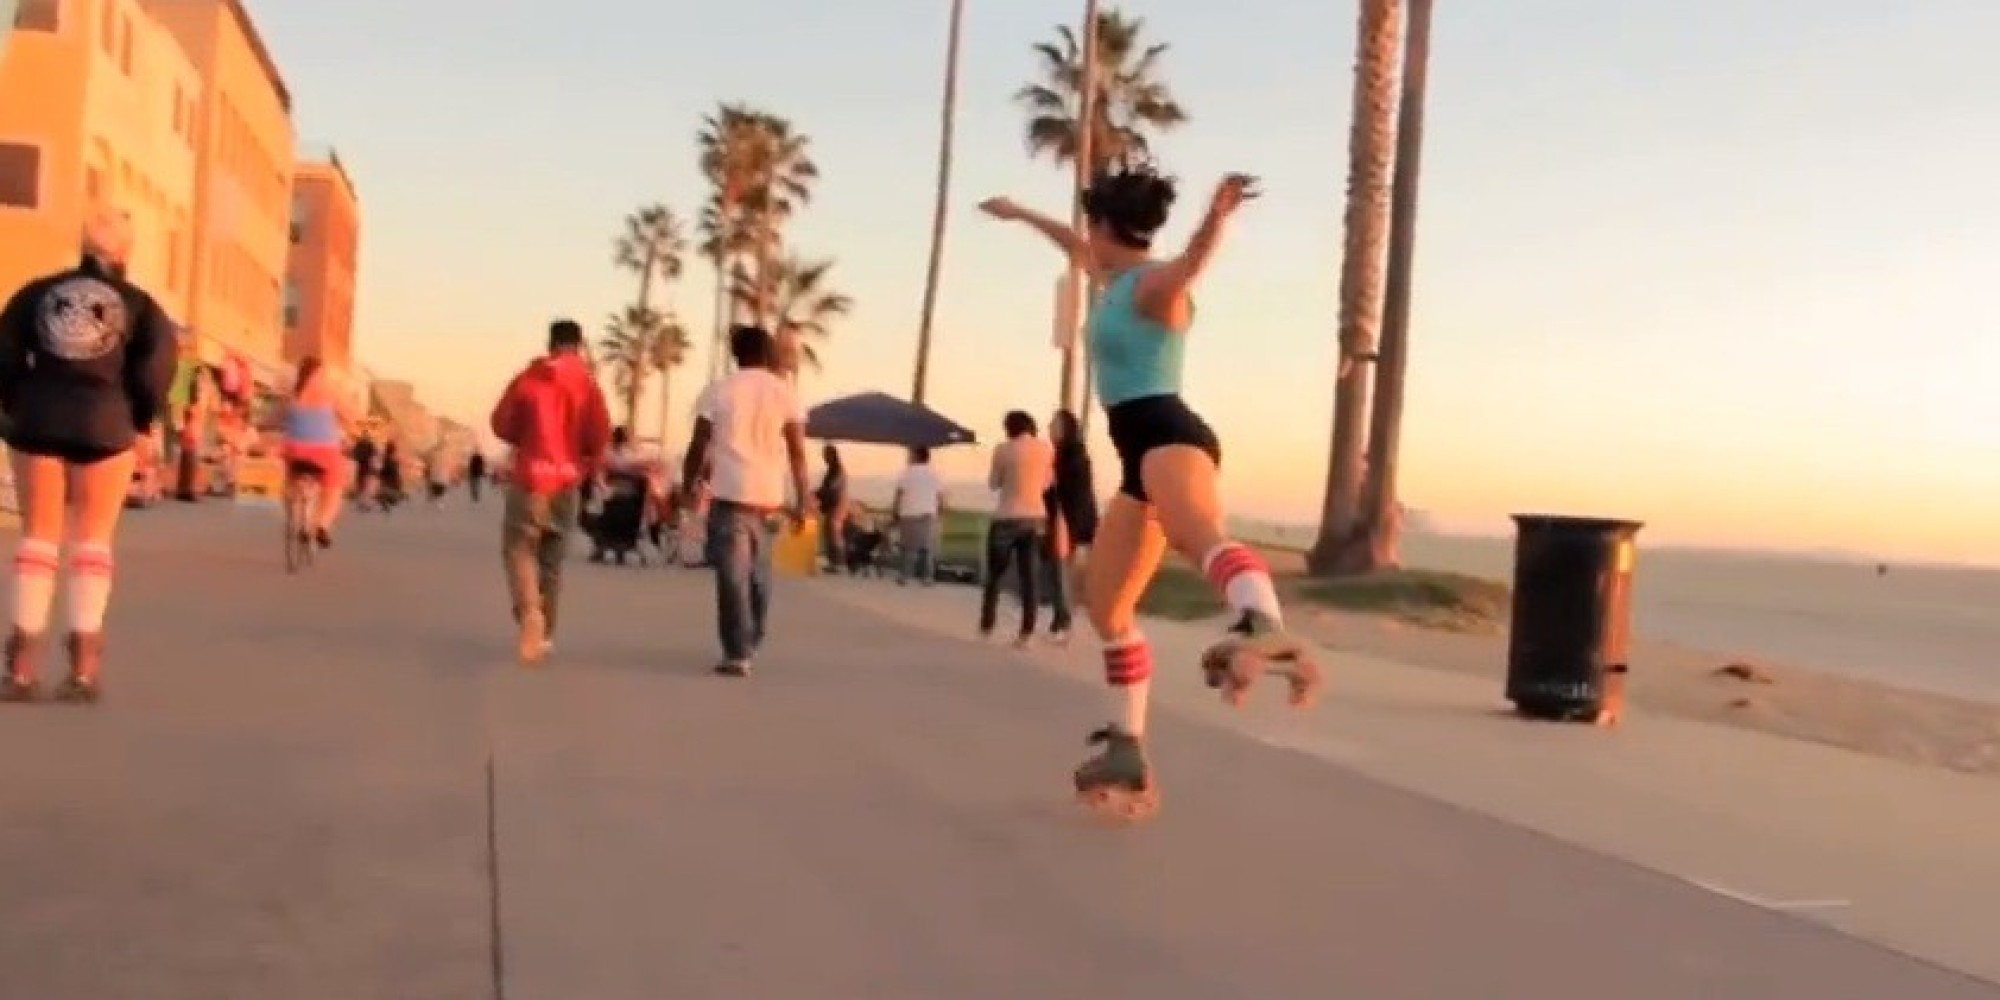 Roller skating los angeles - Michelle Steilen Treats Los Angeles Like Her Own Personal Roller Rink Video Huffpost